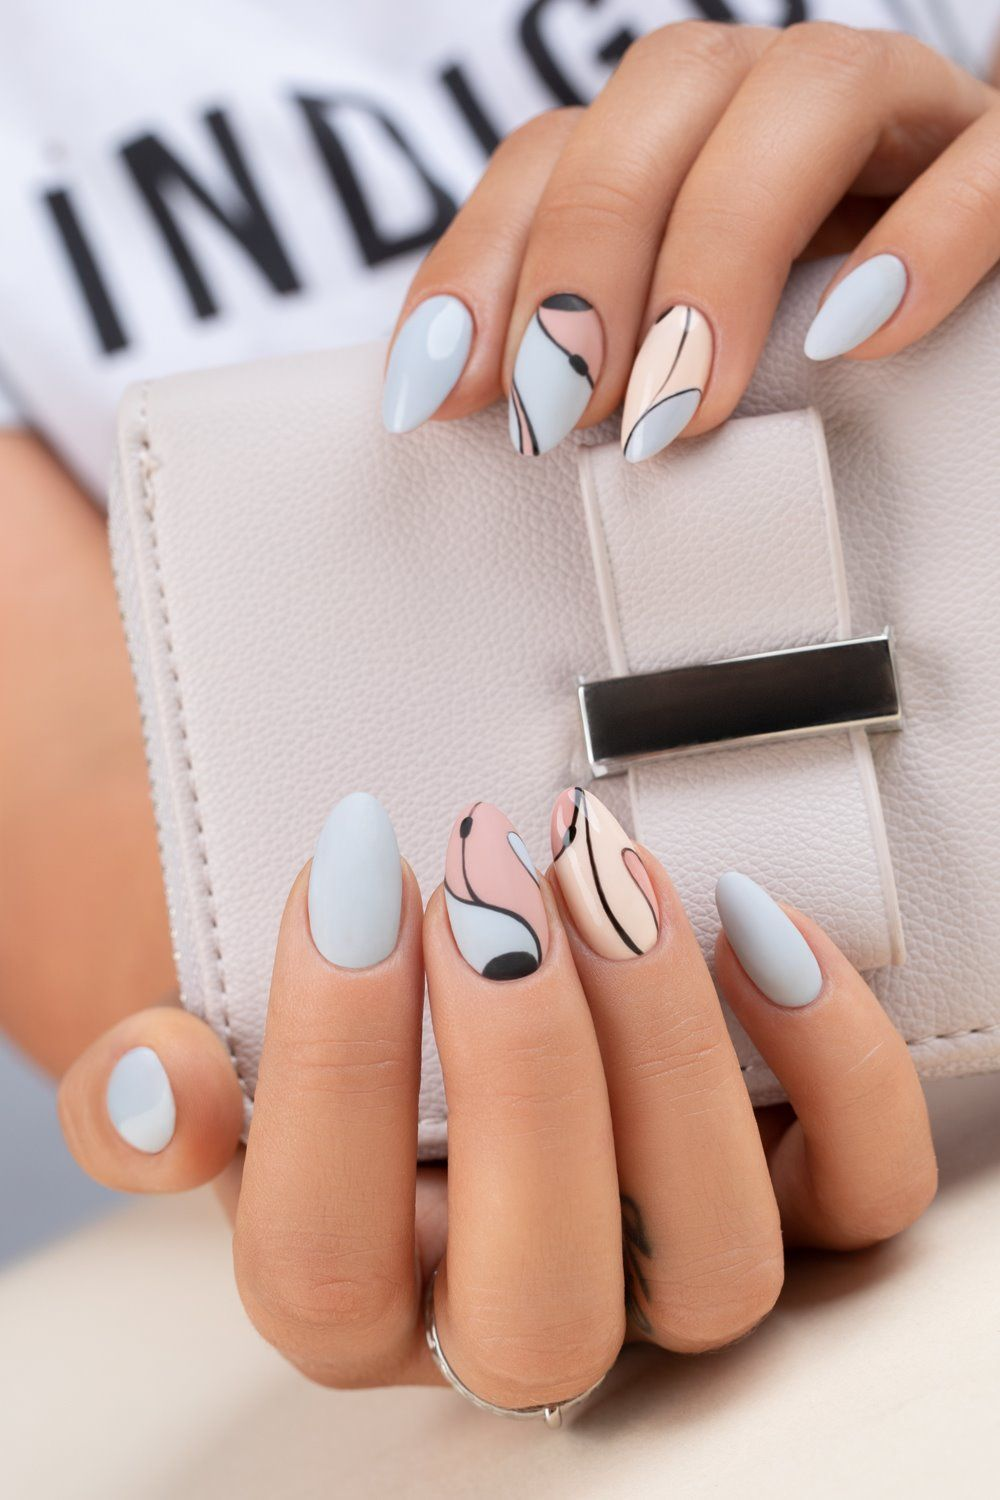 Top 10 Most Luxurious Nail Designs For 2019 2020 Wzory Paznokci